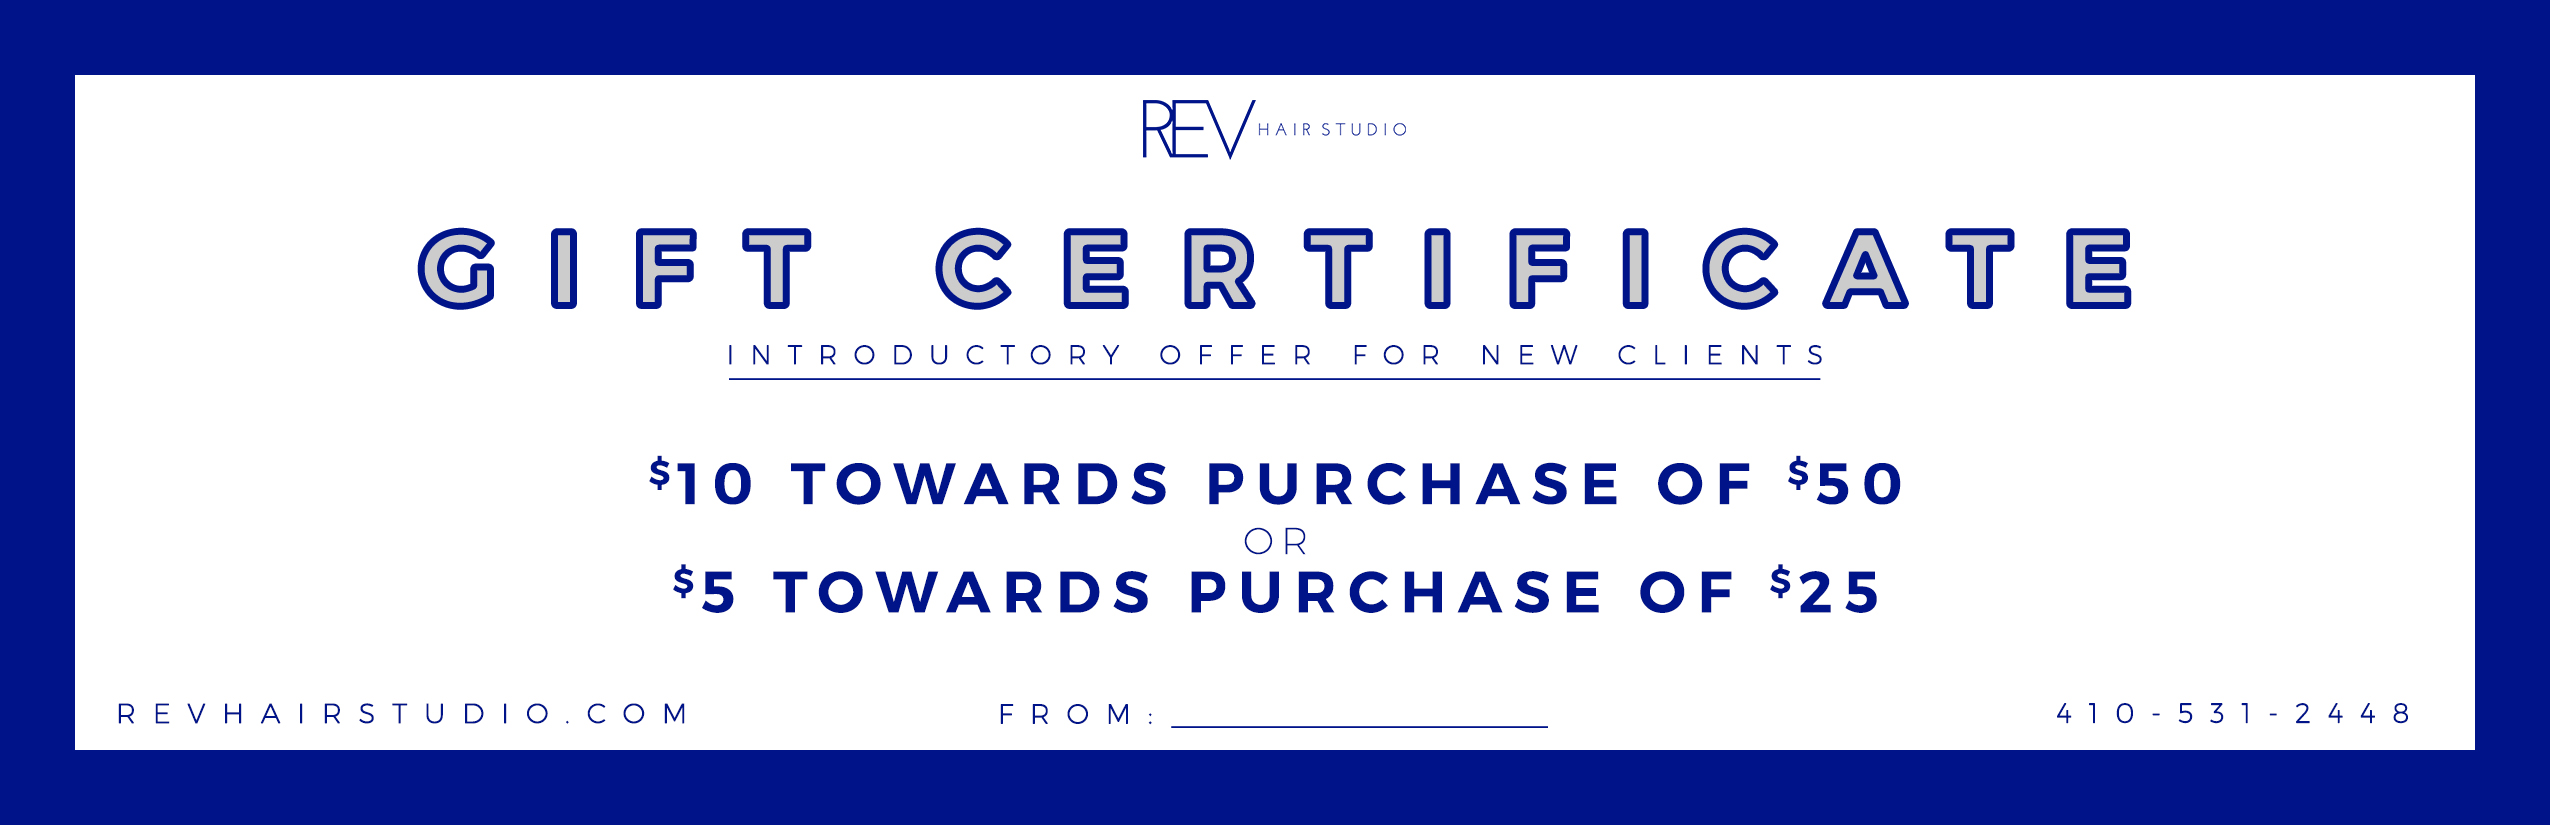 Gift Certificate - General